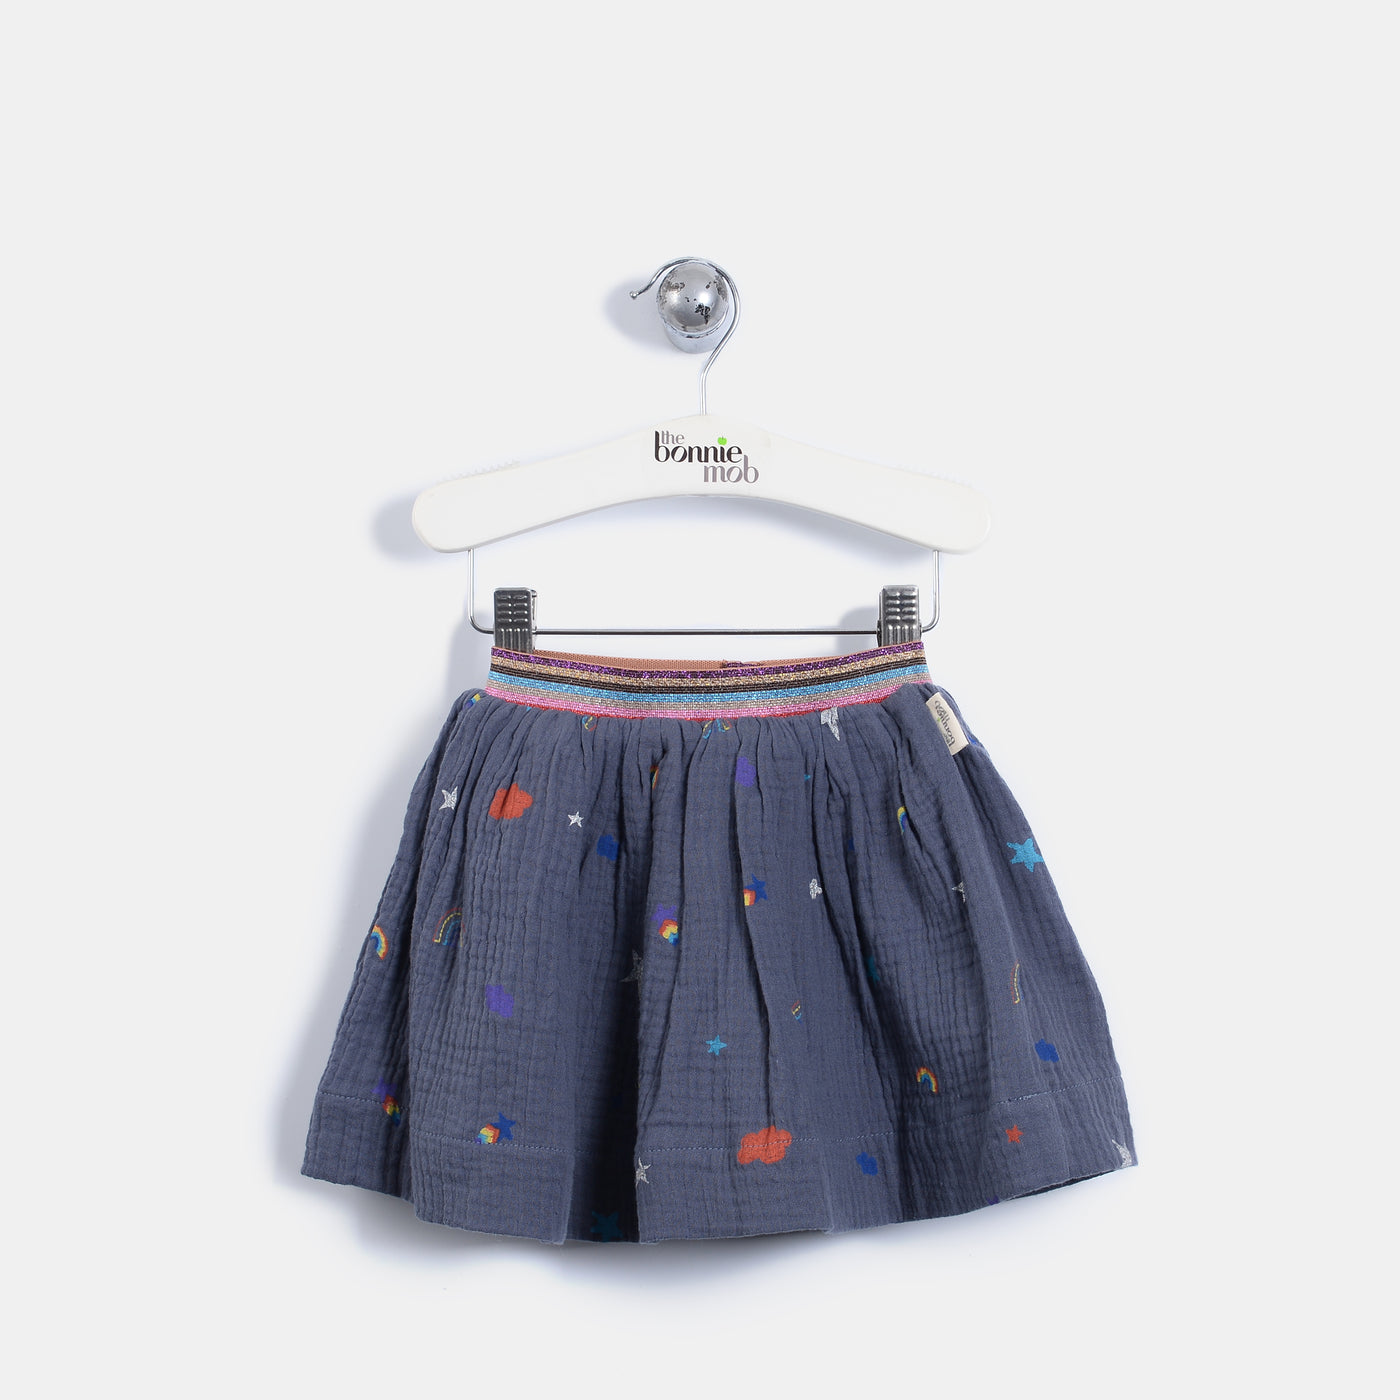 L-BRIELLE - Rainbow And Star Print Skirt - Kids